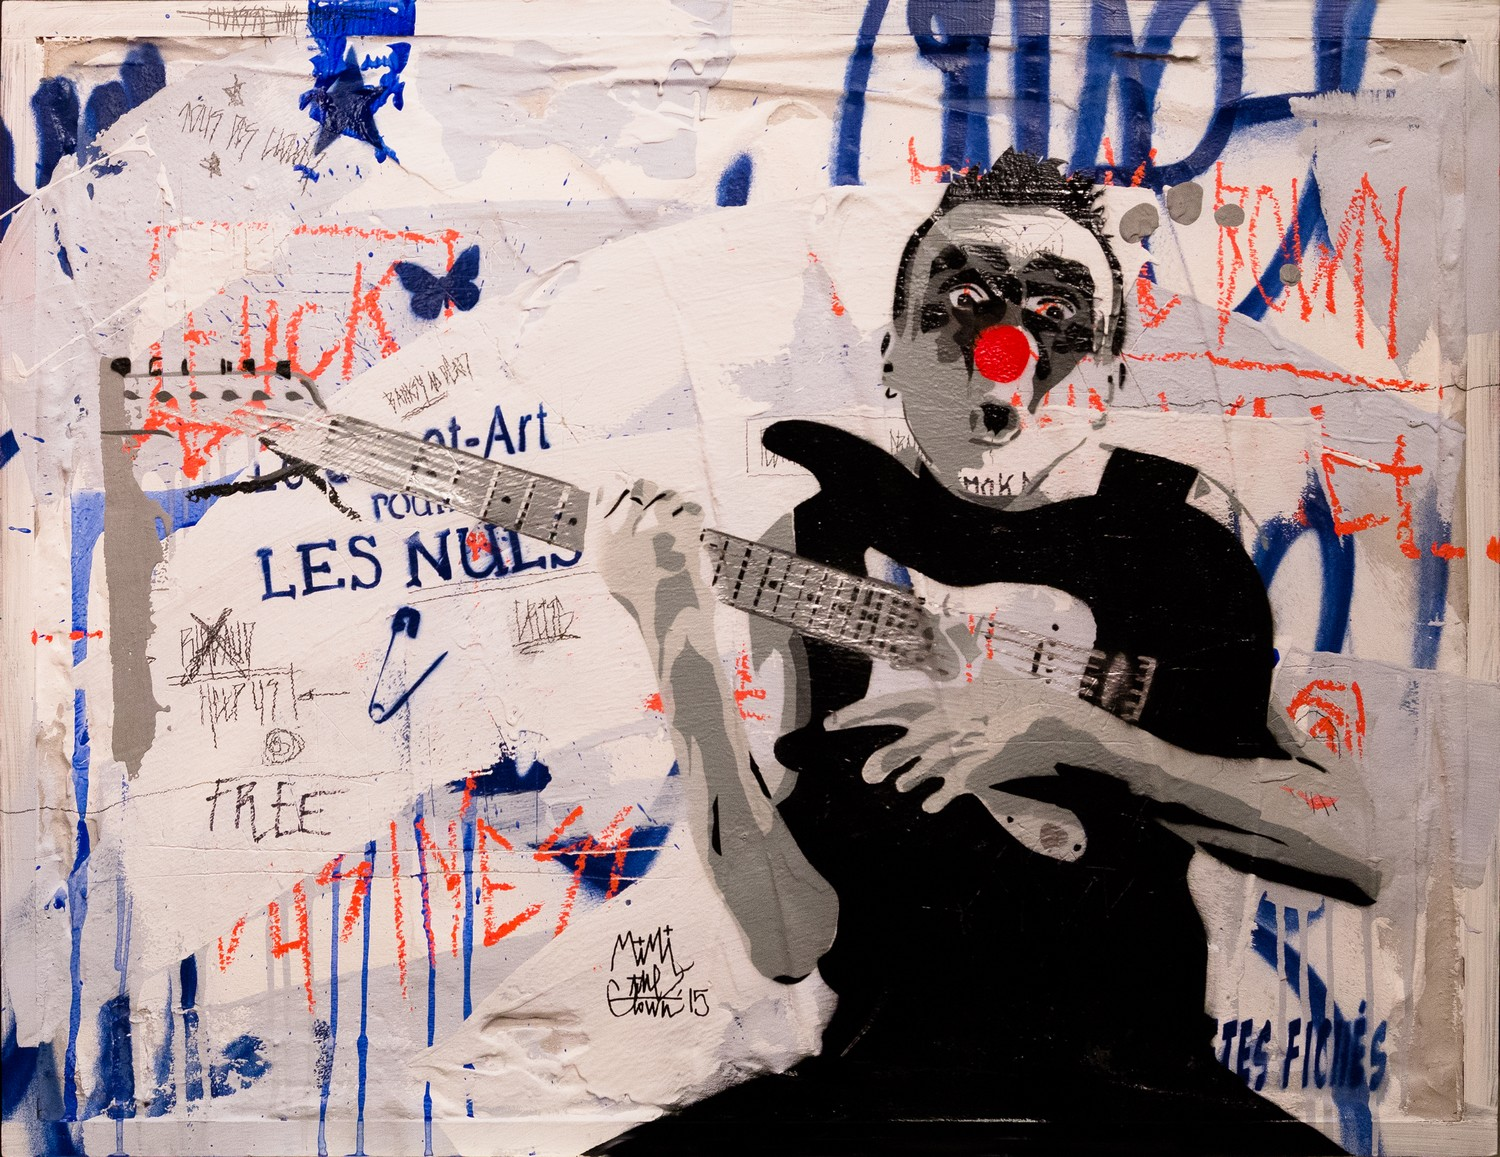 Mimi The Clown - Le Street art pour les nuls